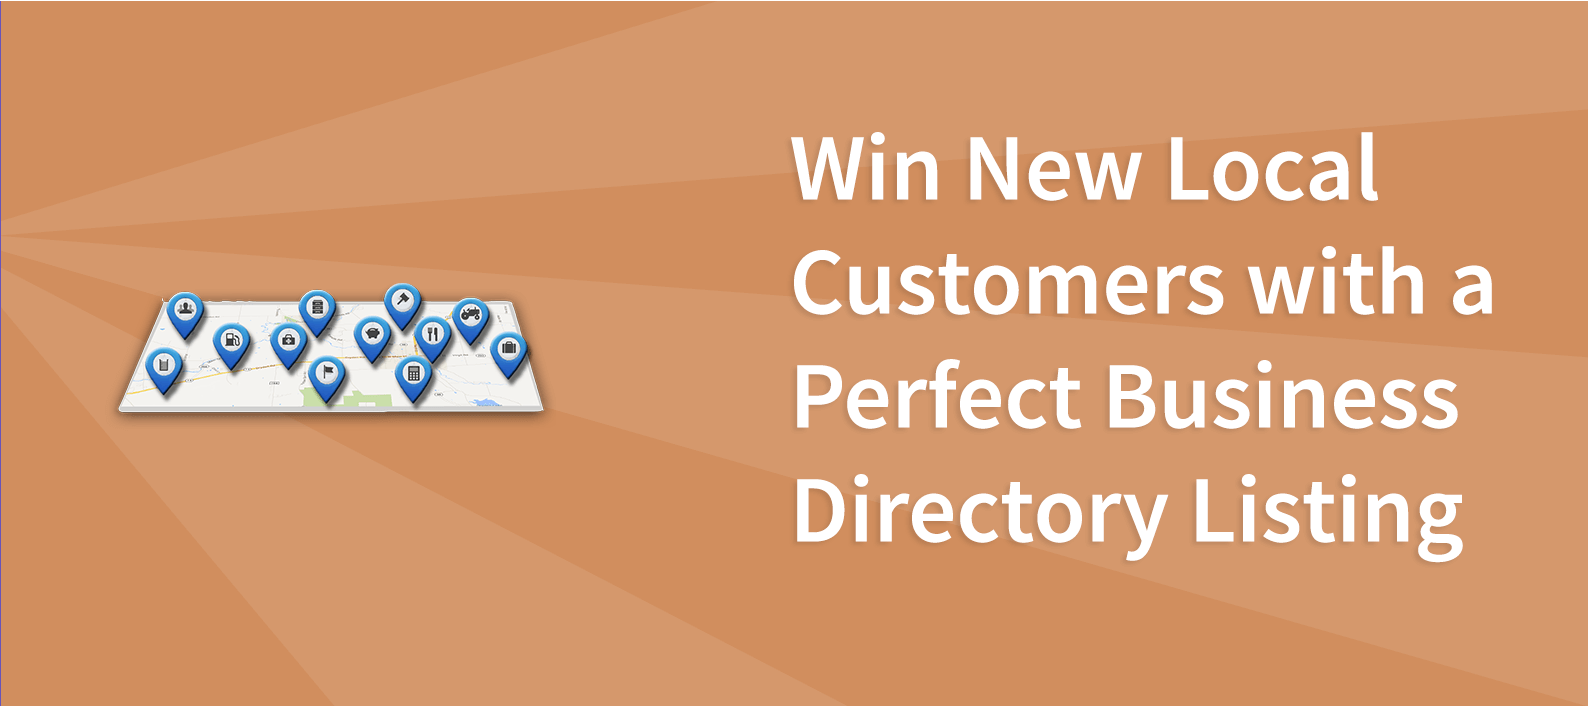 bulid 5 business directory on top sites